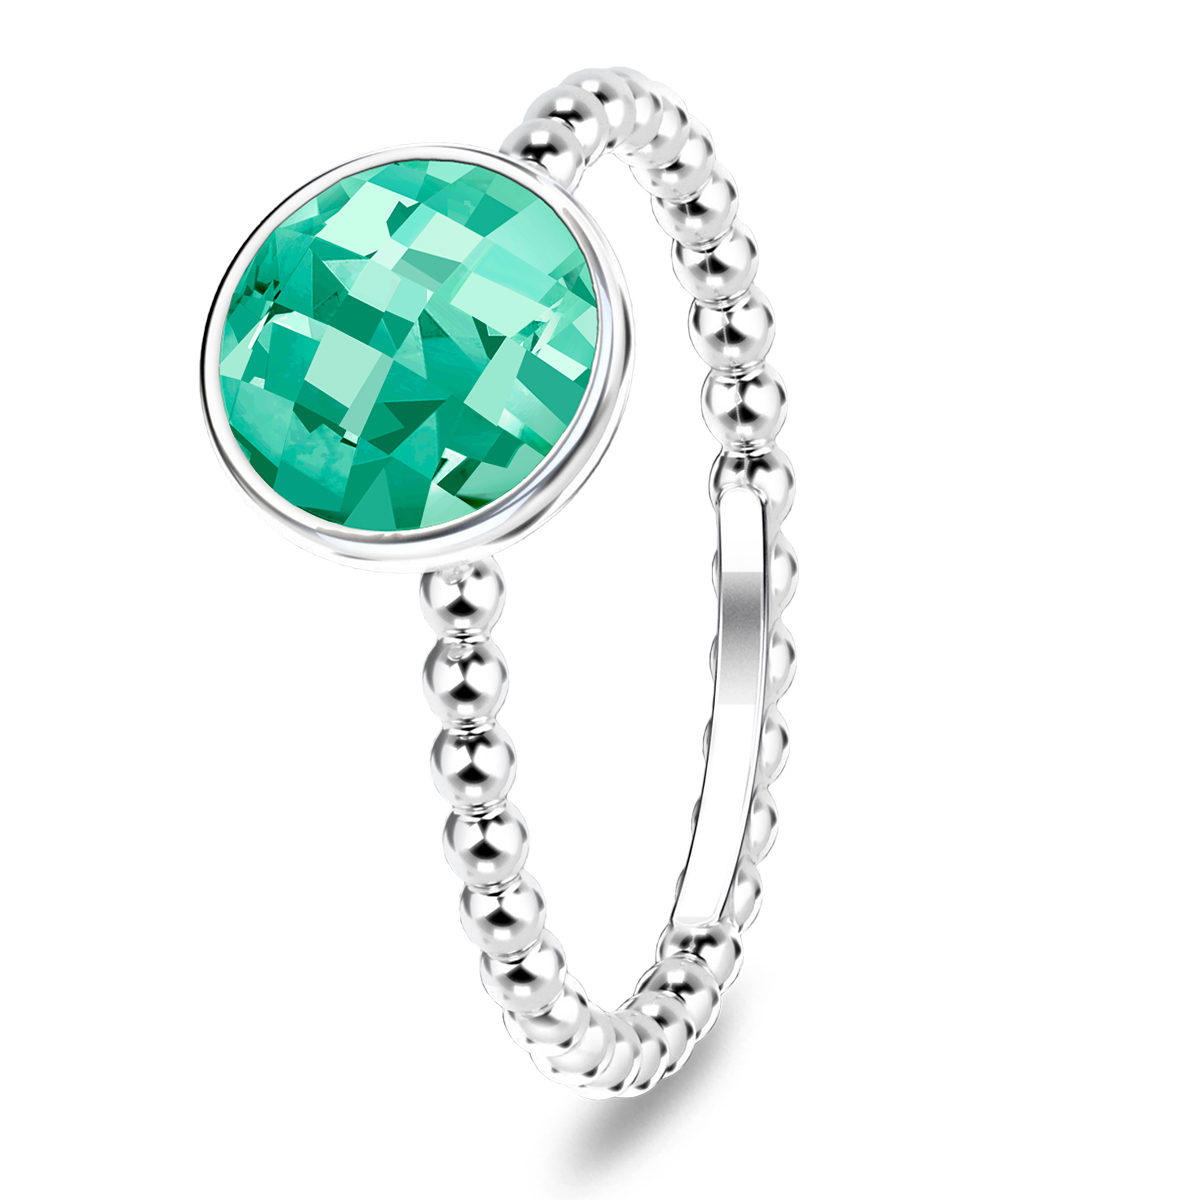 Image of   Spinning Jewelry ring - Aqua green - Rhodineret sterlingsølv